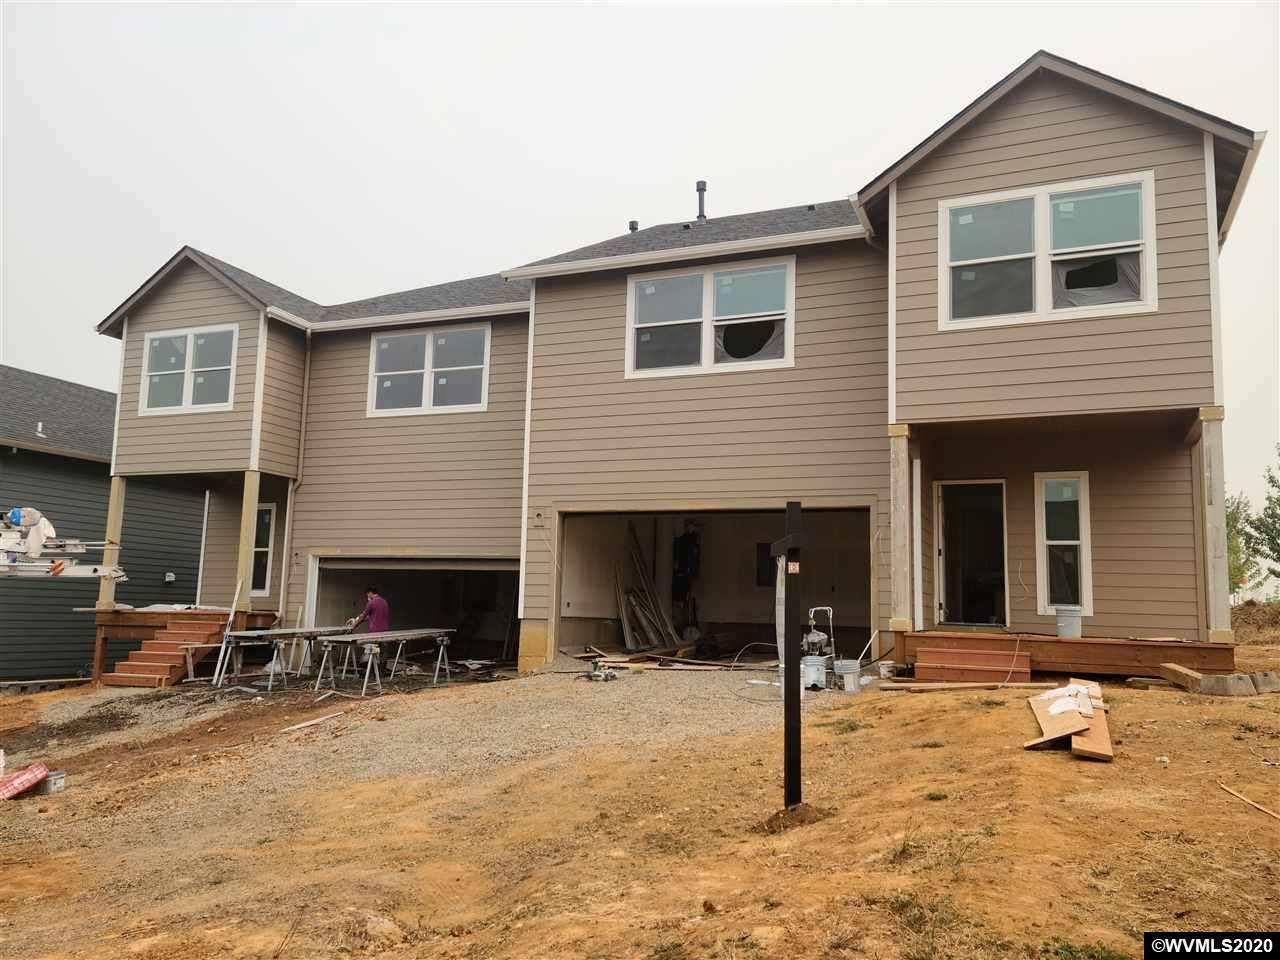 740 Limelight Ct - Photo 1